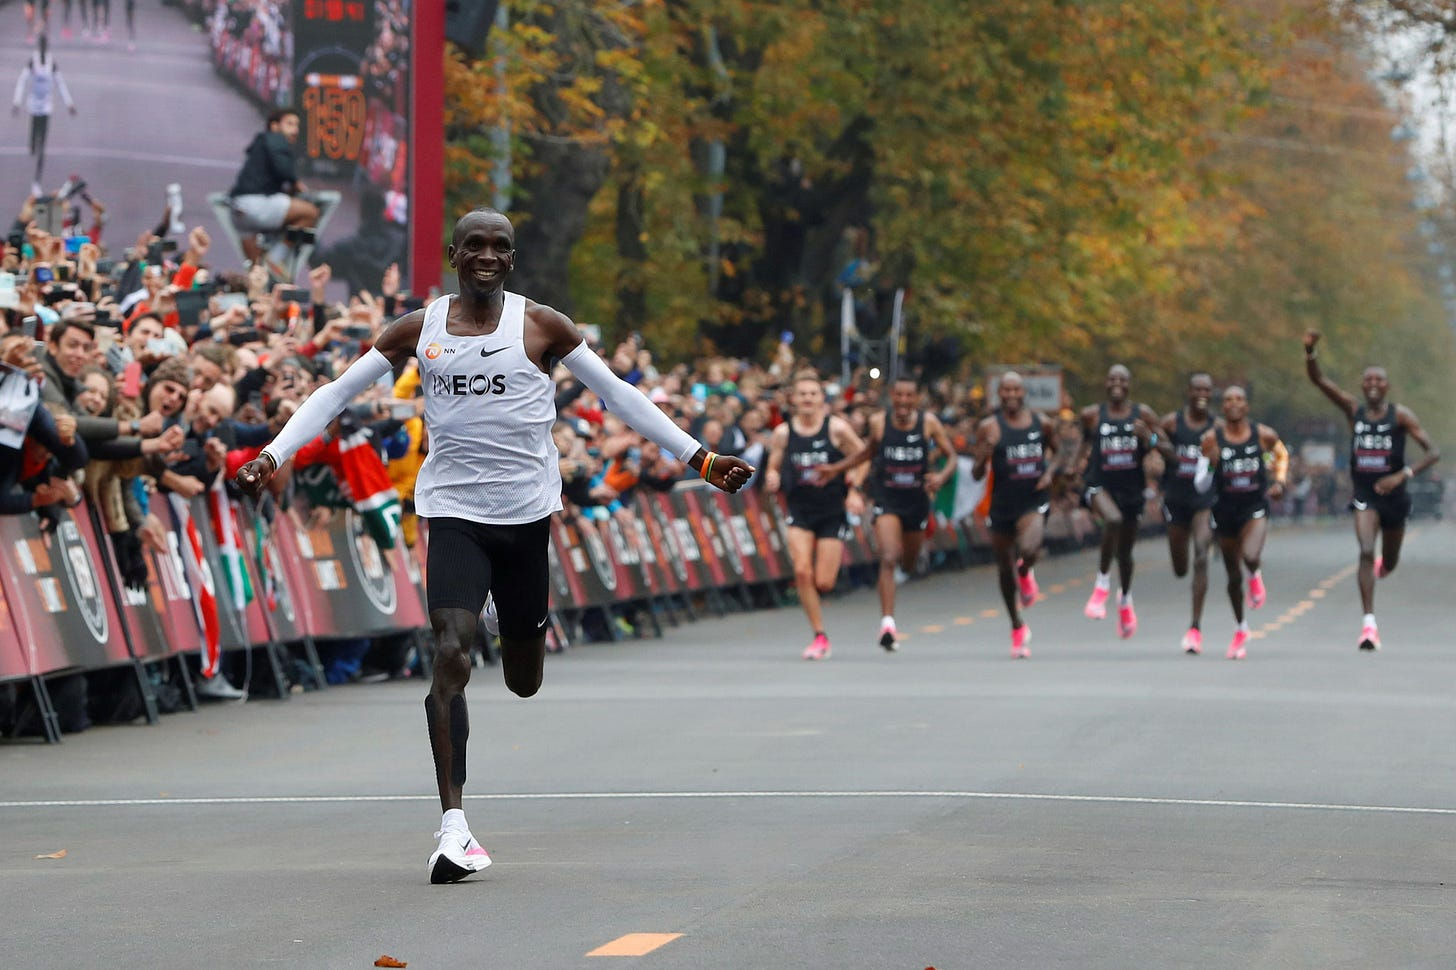 Eliud Kipchoge Breaks Two-Hour Marathon Barrier - The New York Times